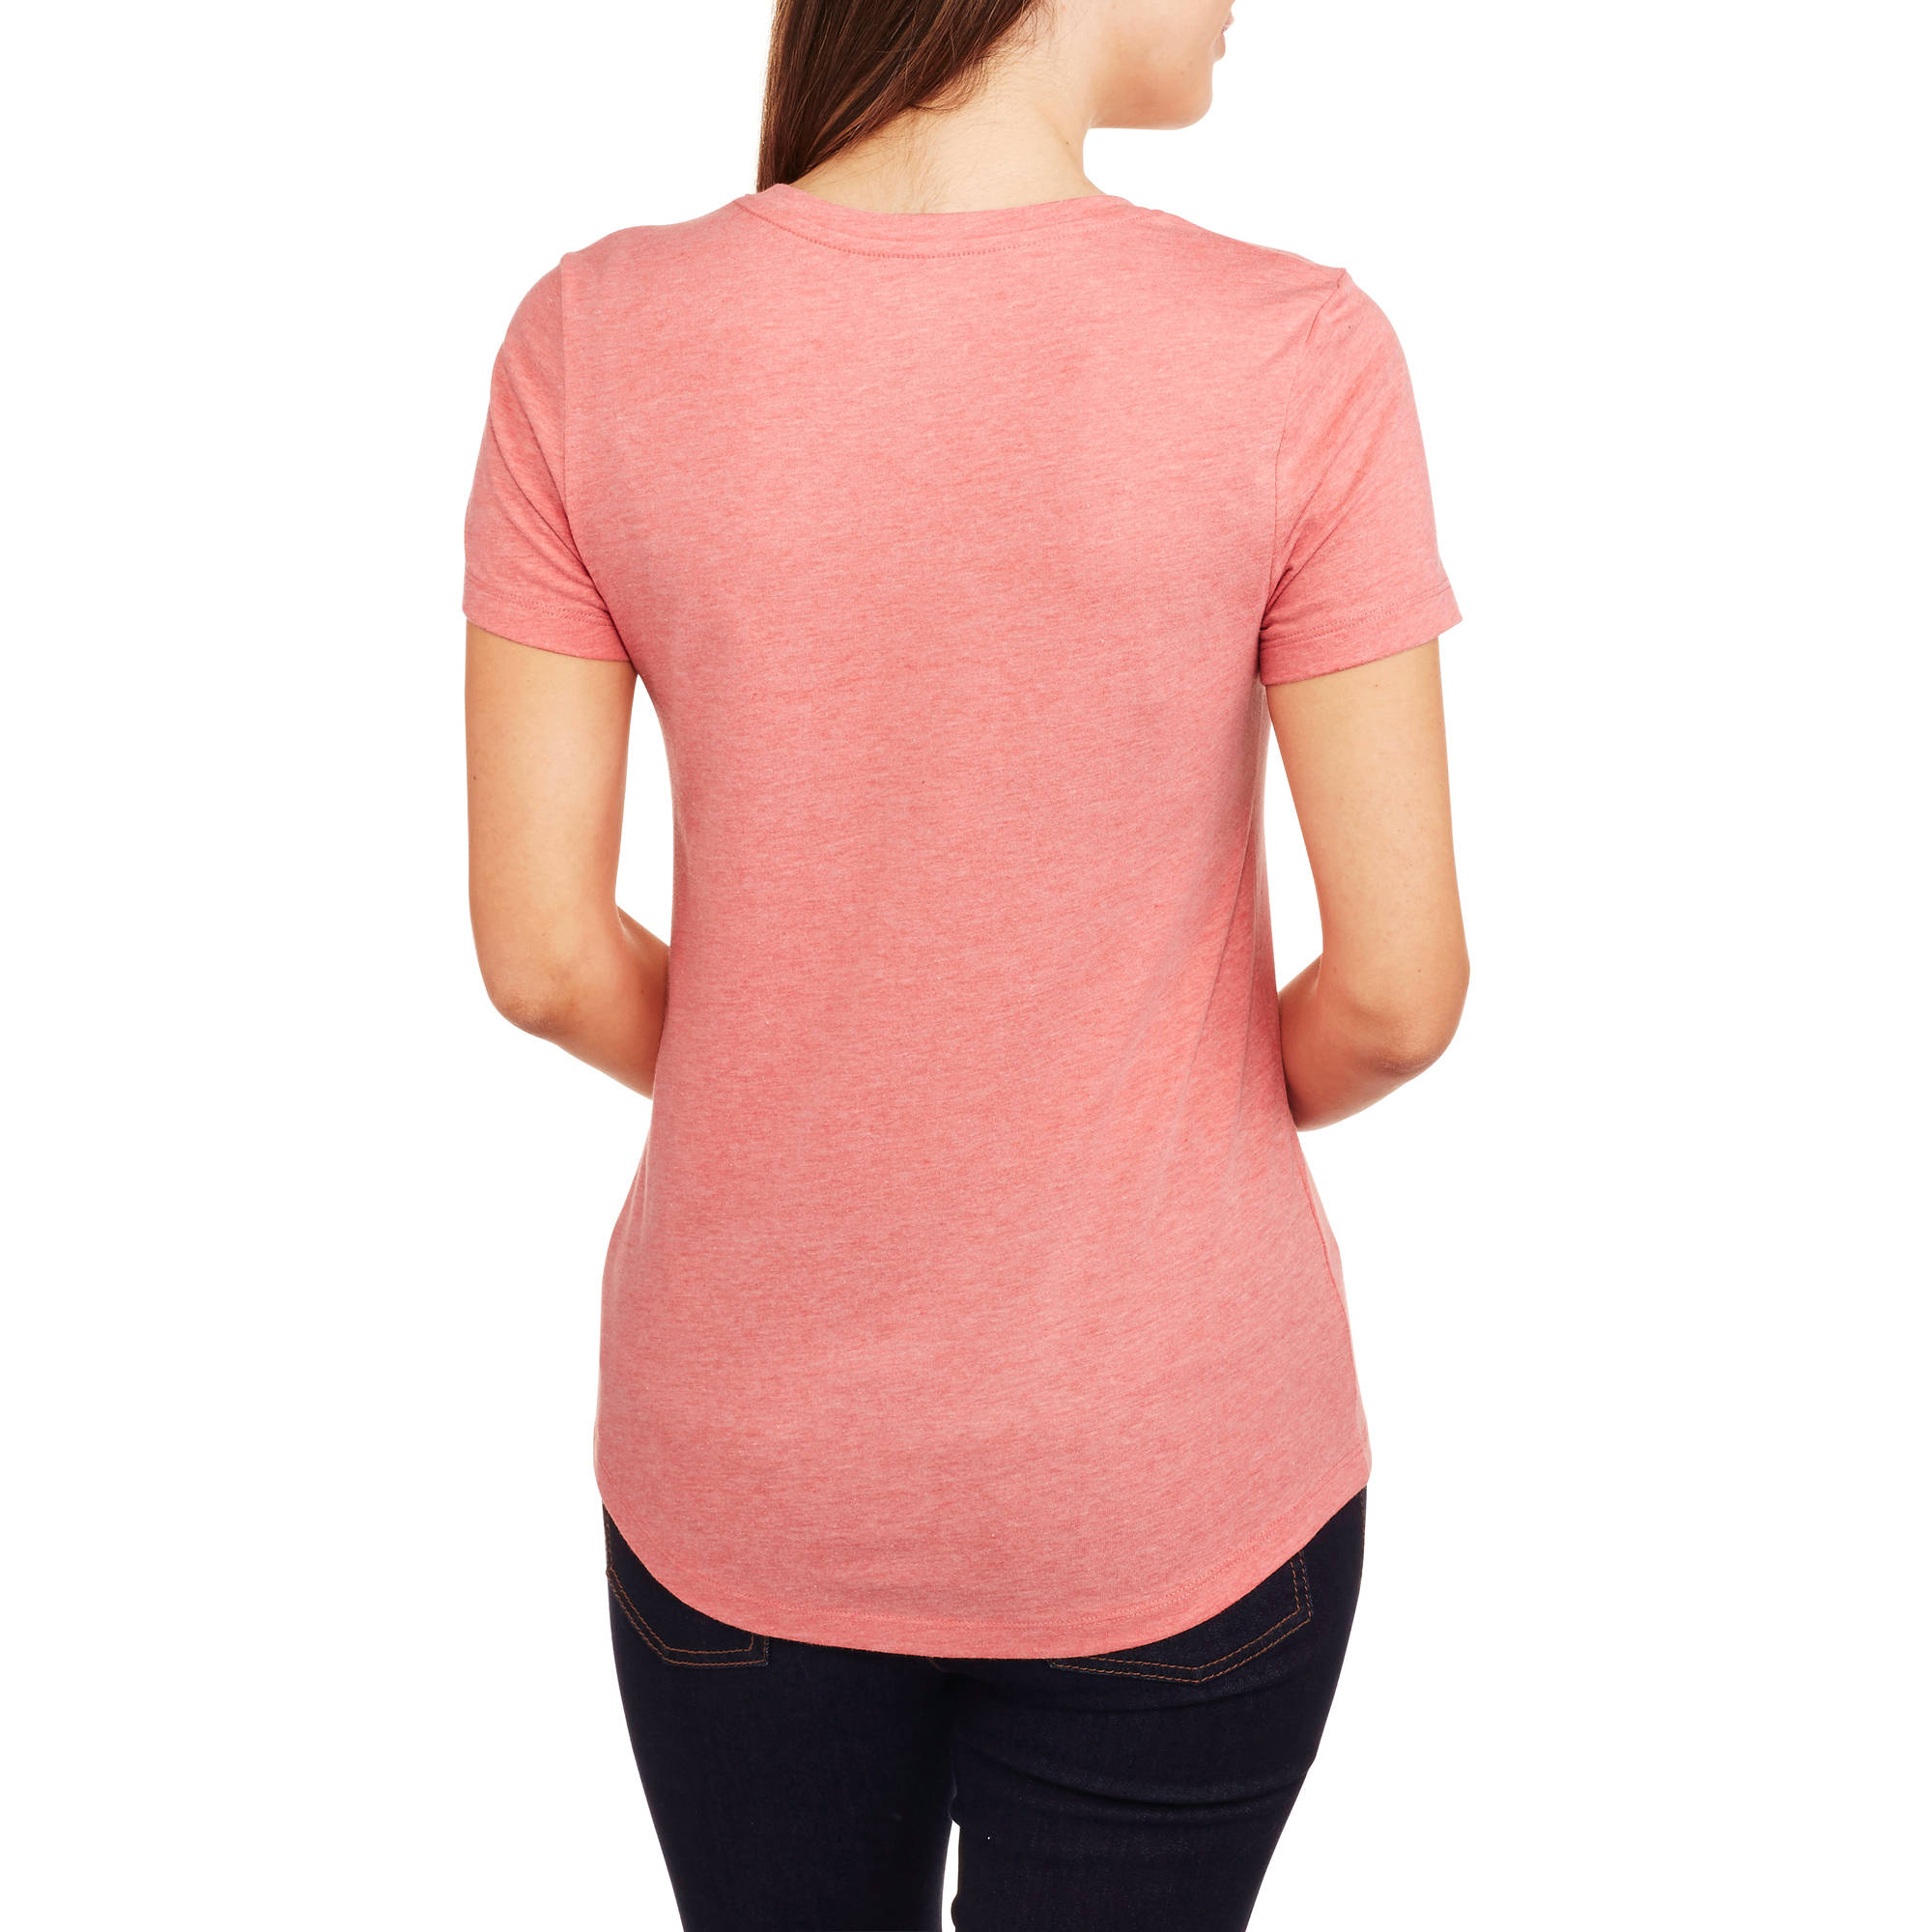 2 Pack Faded Glory XXL Short Sleeve V-Neck Tee striped Pink/&Grey Peach//white